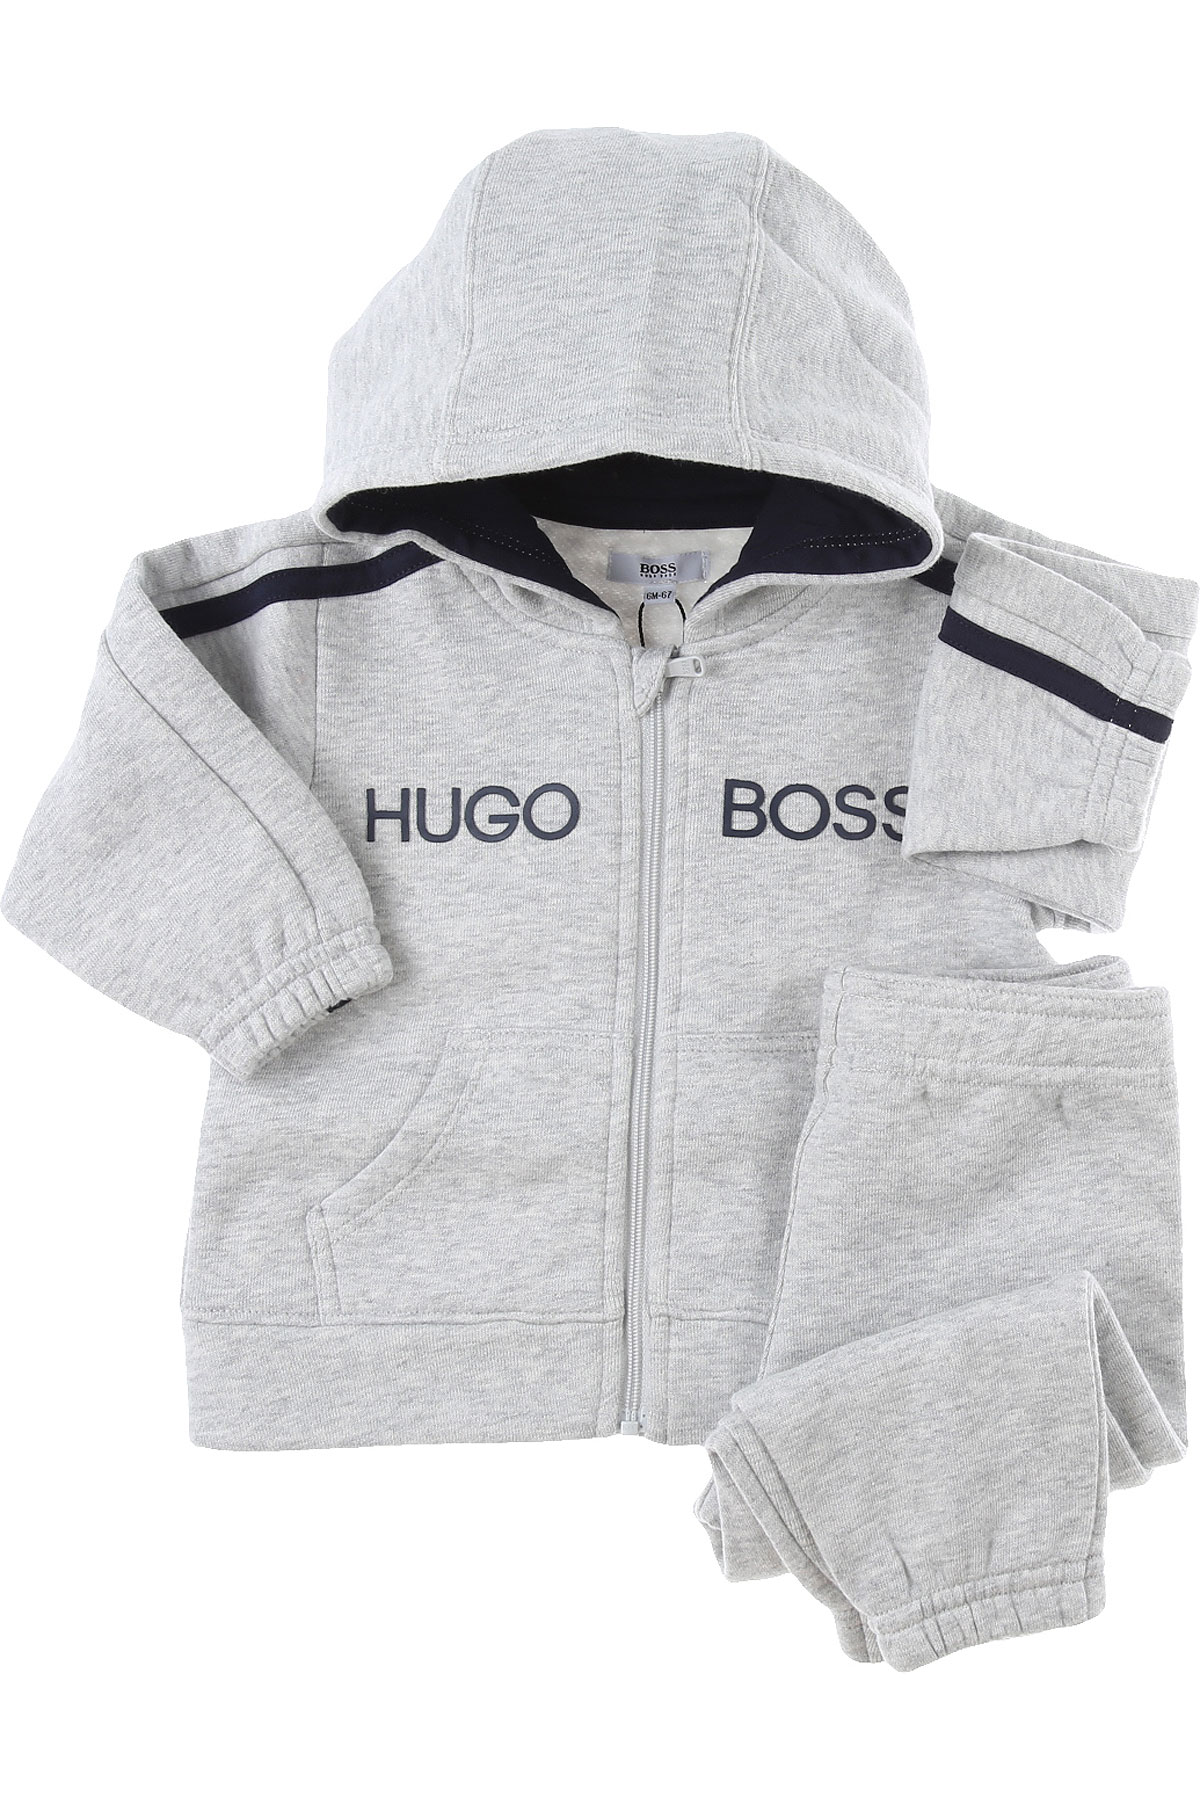 Hugo Boss Baby Sets for Boys On Sale, Grey, Cotton, 2019, 18M 3M 6M 9M